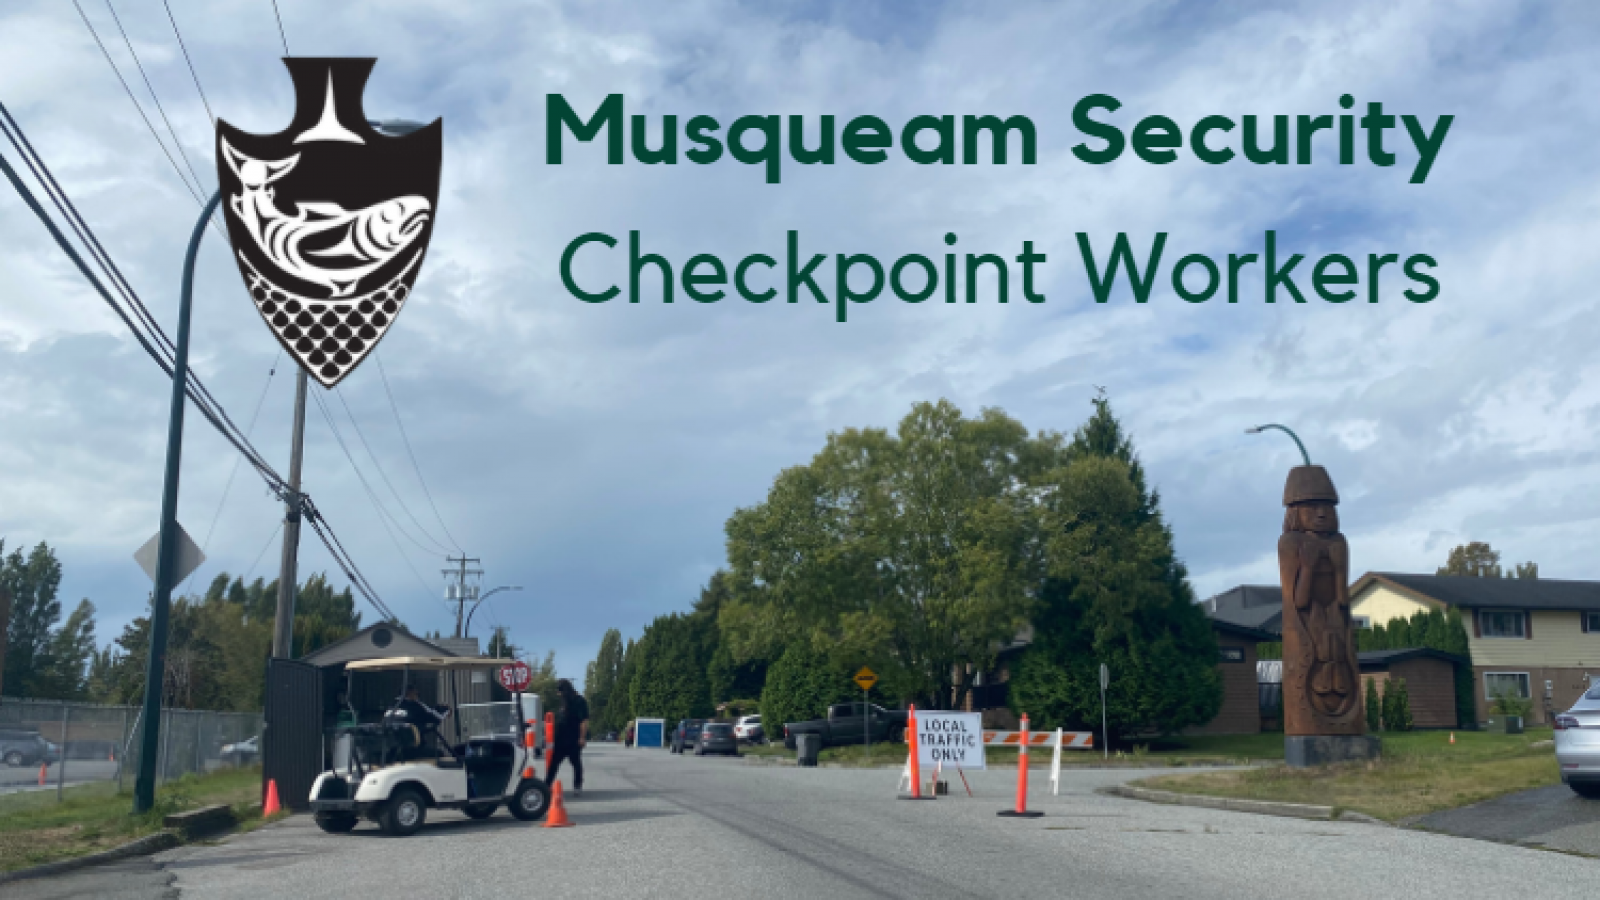 Musqueam Security Checkpoint Workers